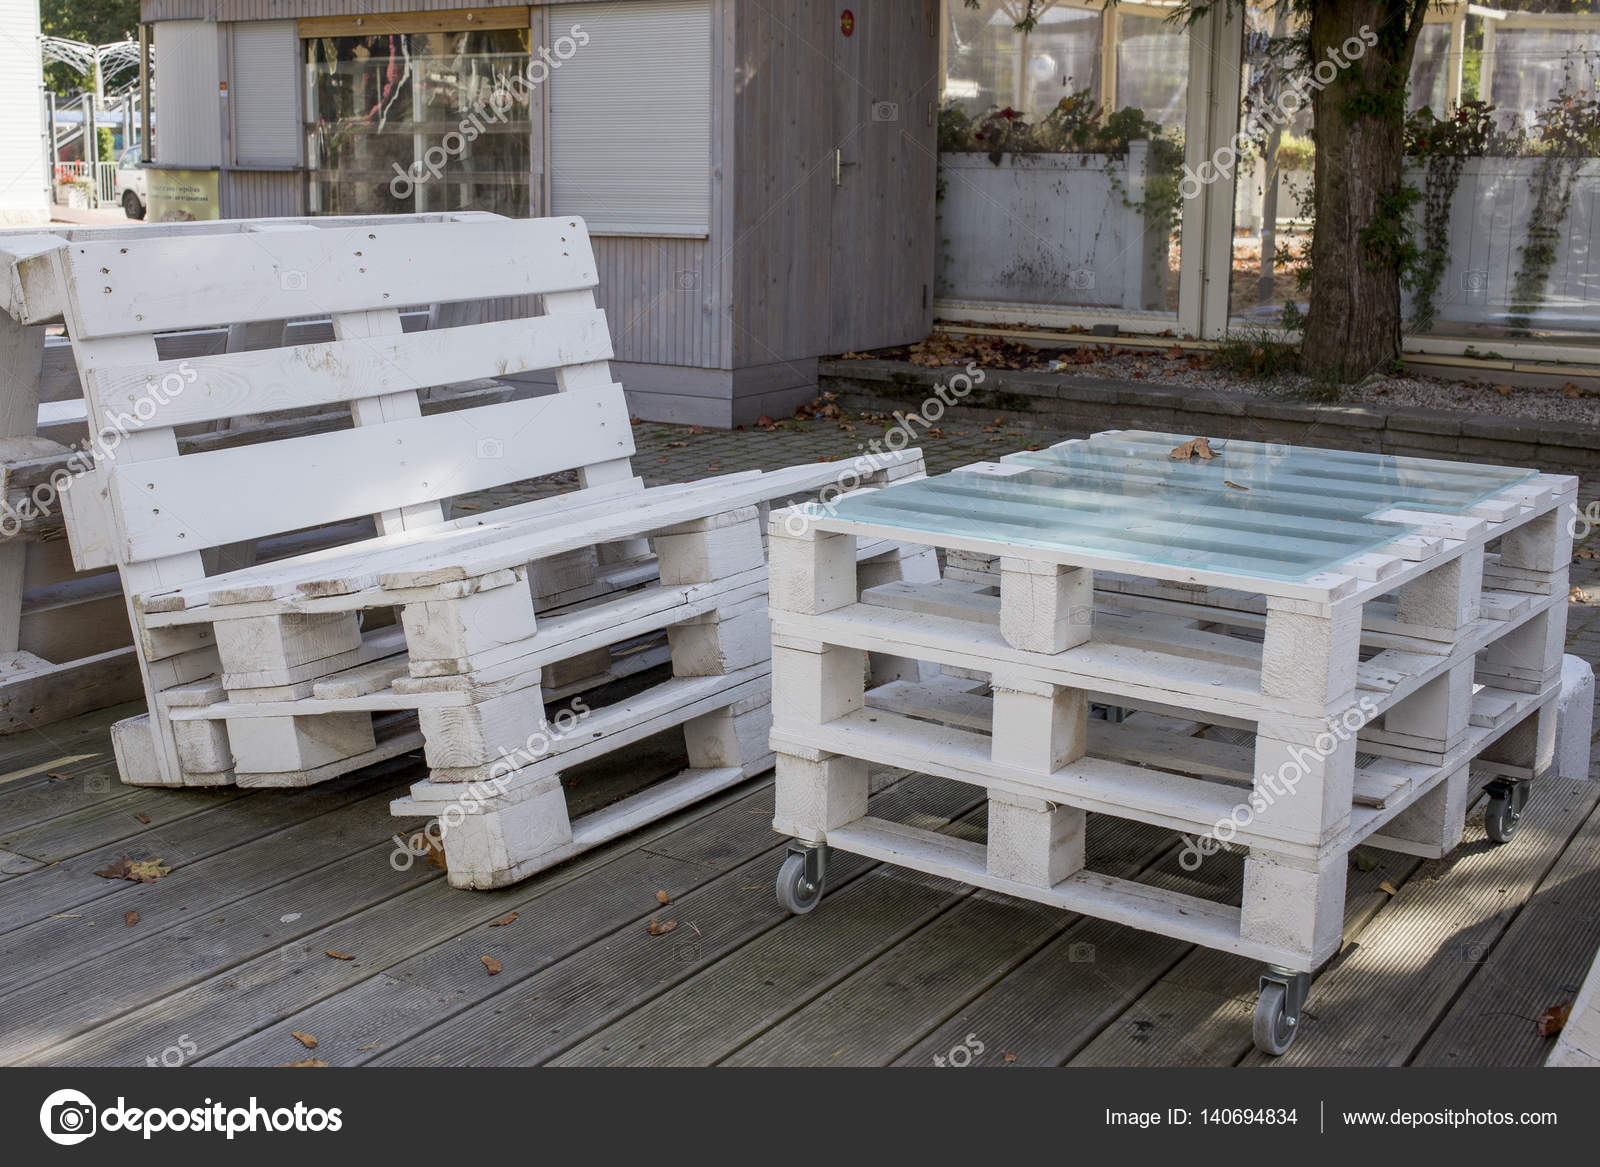 Mobili pallet beautiful with mobili pallet interesting - Mobili di pallets ...